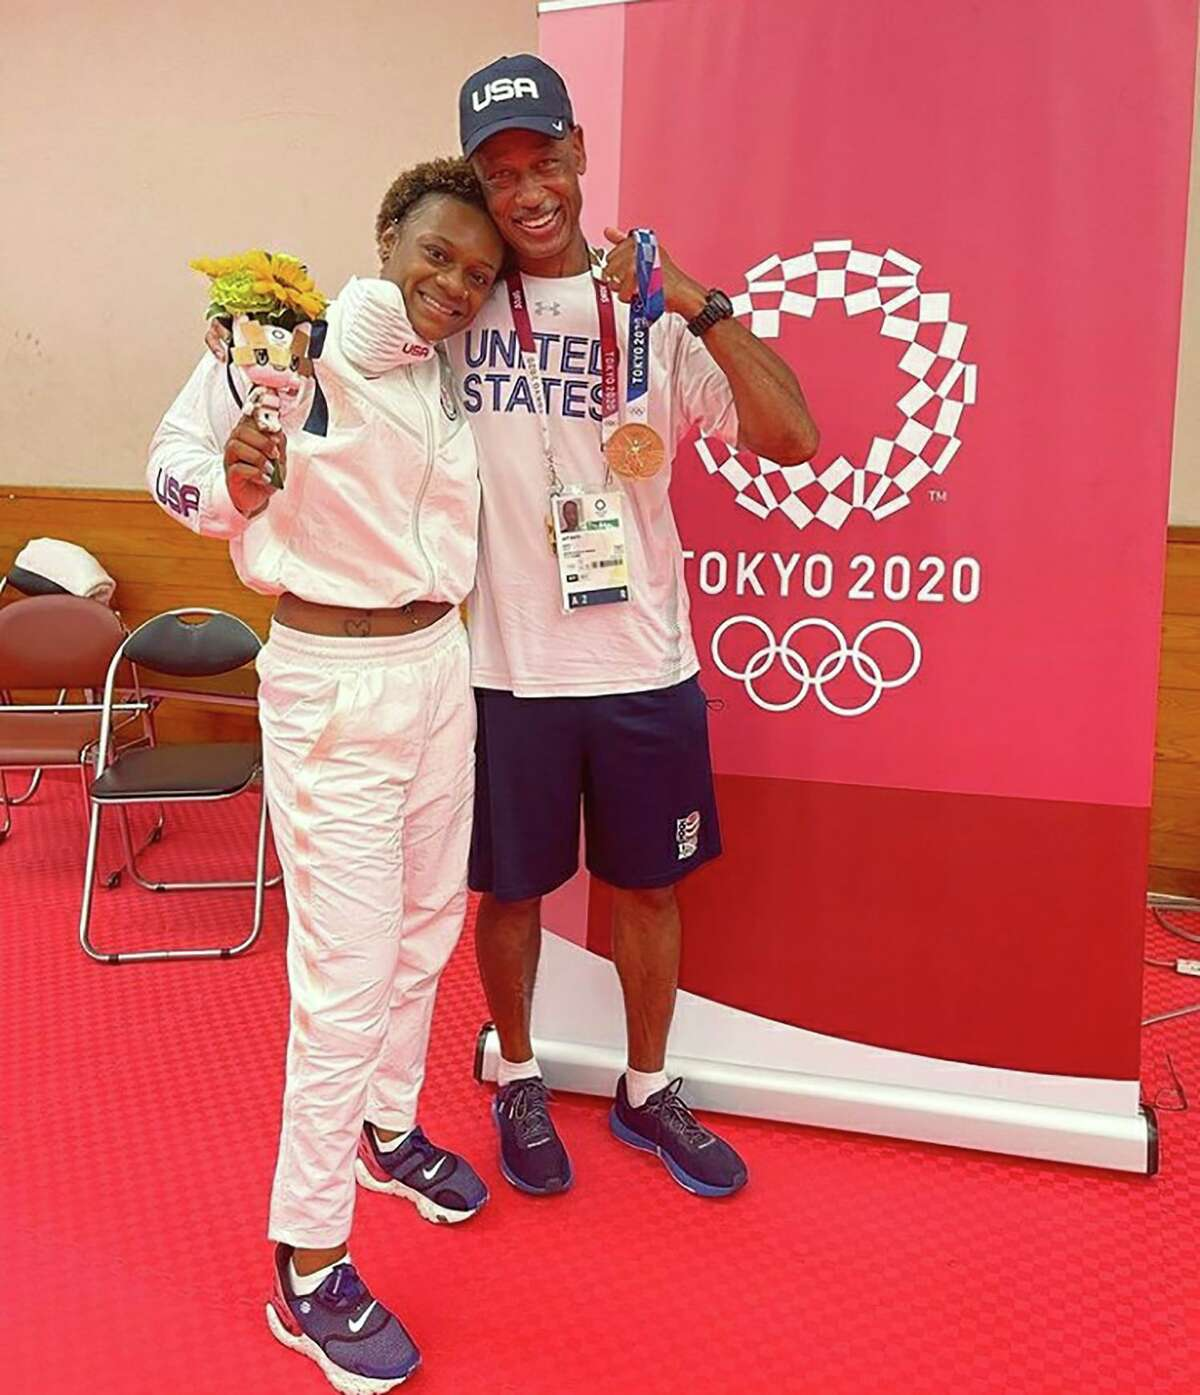 Oshae Jones poses with her bronze medal with San Antonio boxing coach Jeff Mays at a training camp in Miyazaki, Japan. Jones won the bronze medal at the 2020 Tokyo Olympics in the women's 152-pound division.